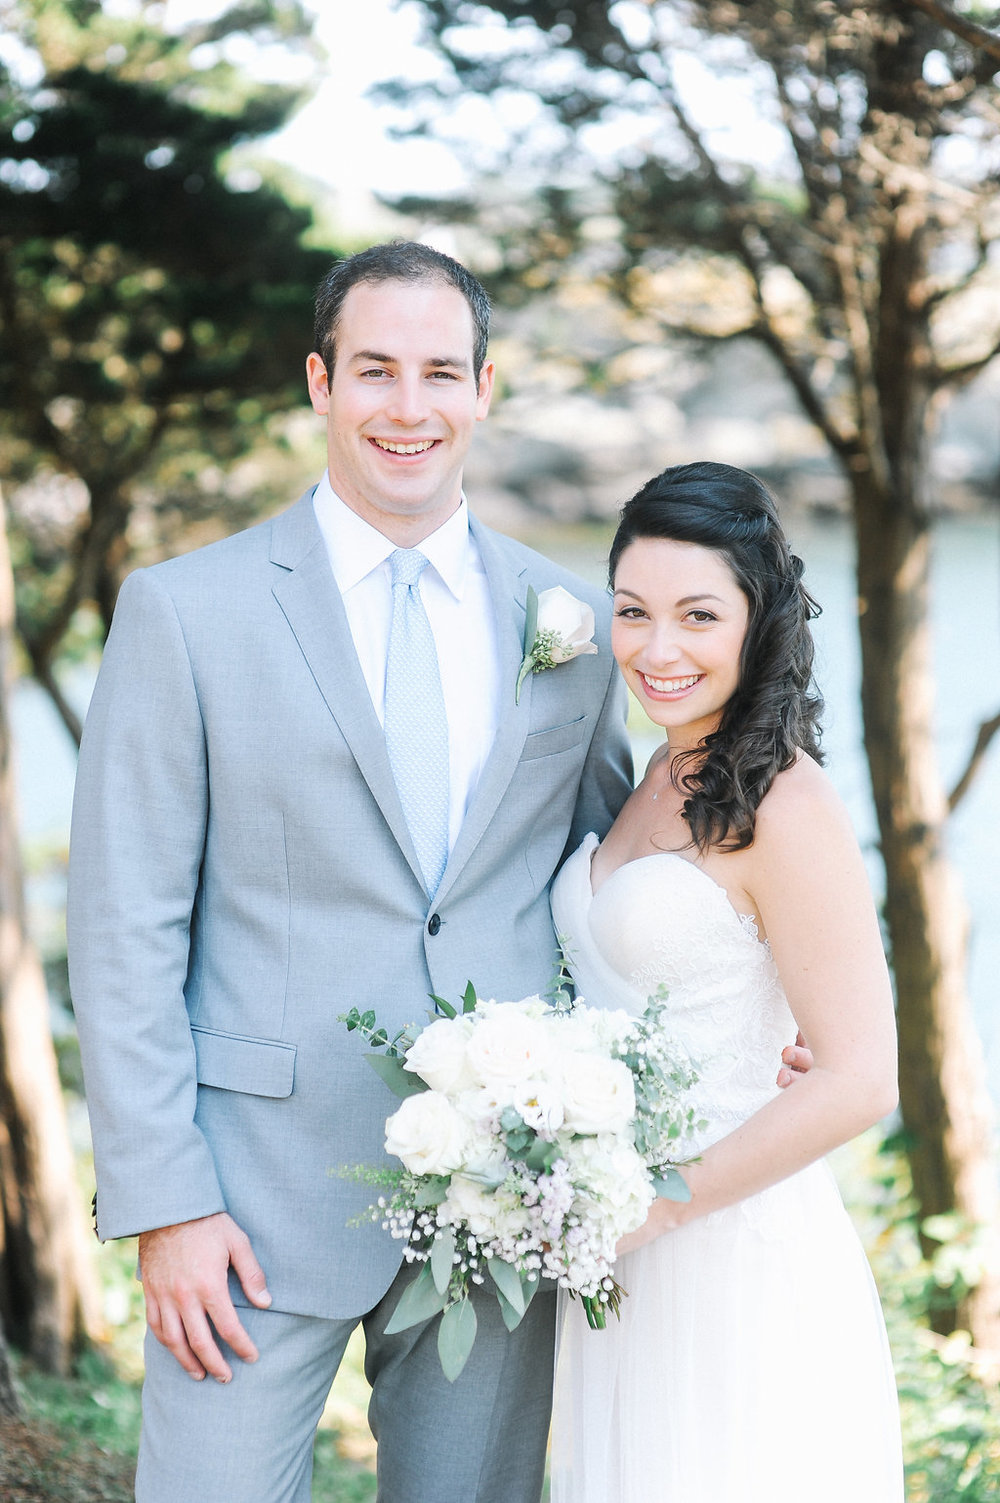 BrideGroomPortraits_Dragonline_Studios_Jamestown_RI_Wedding-64.jpg